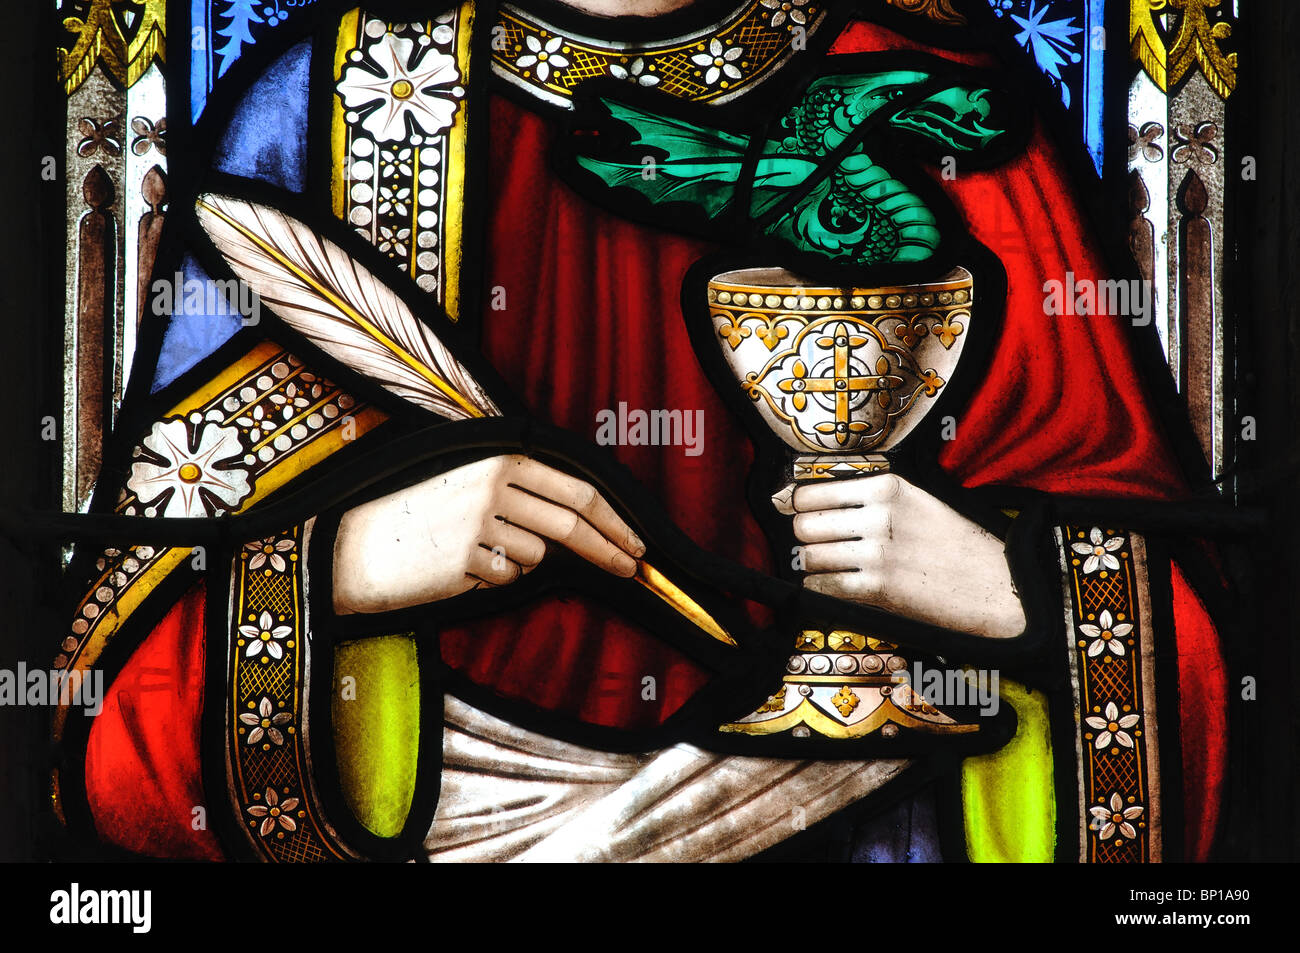 St. John with quill and chalice stained glass in St. Gregory`s Church, Tredington, Warwickshire, England, UK - Stock Image